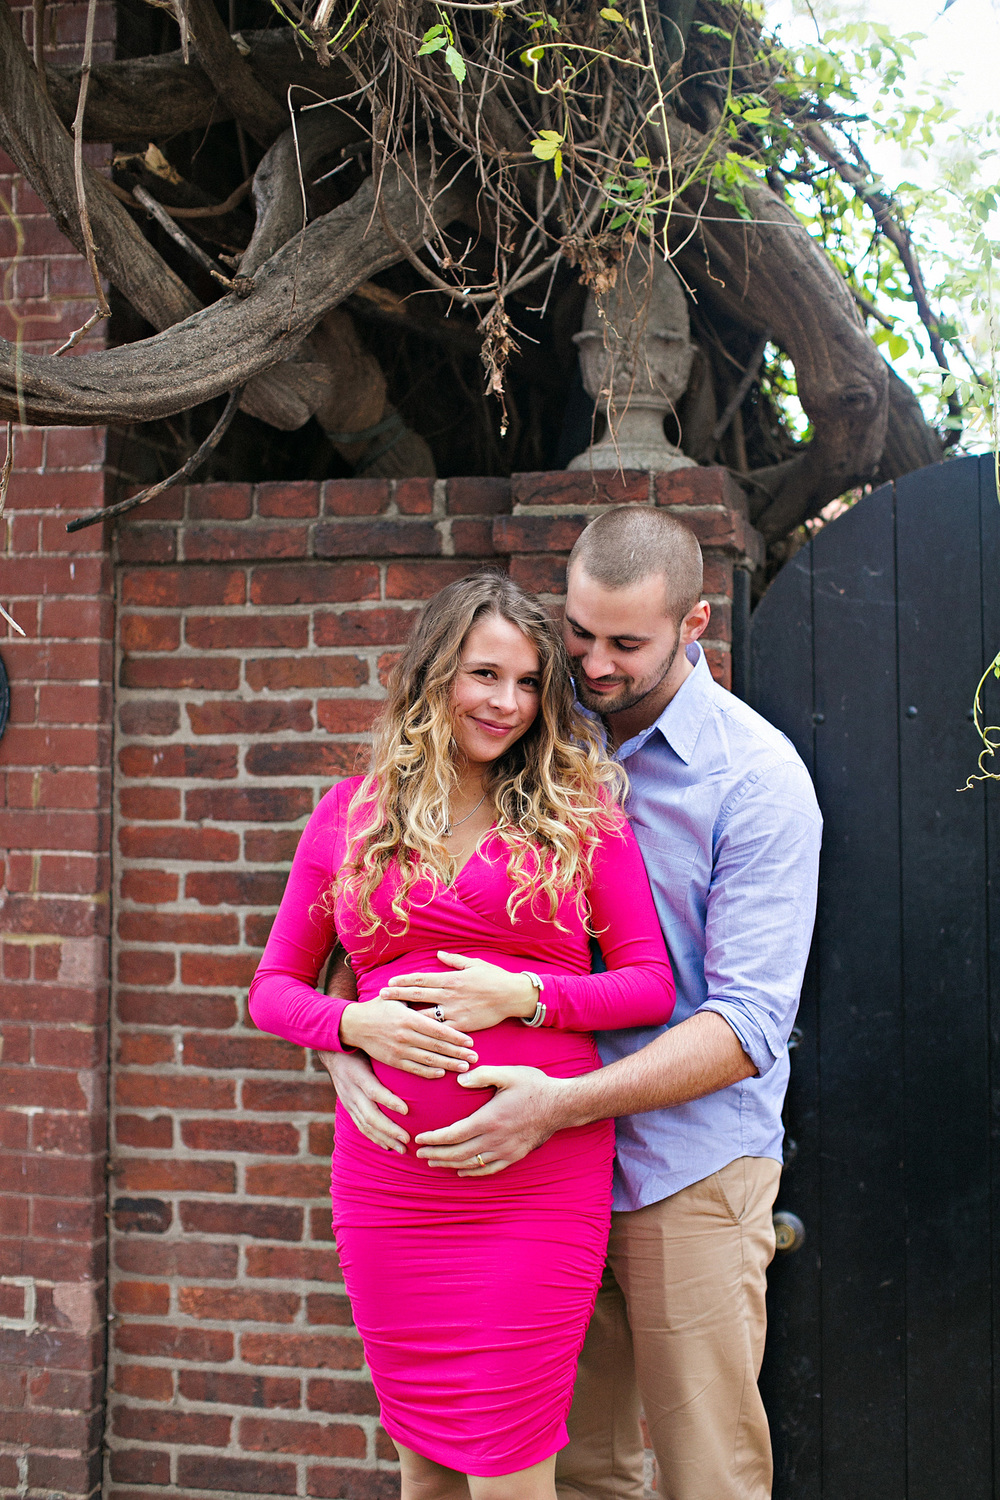 514-old-town-alexandria-maternity-photography.jpg